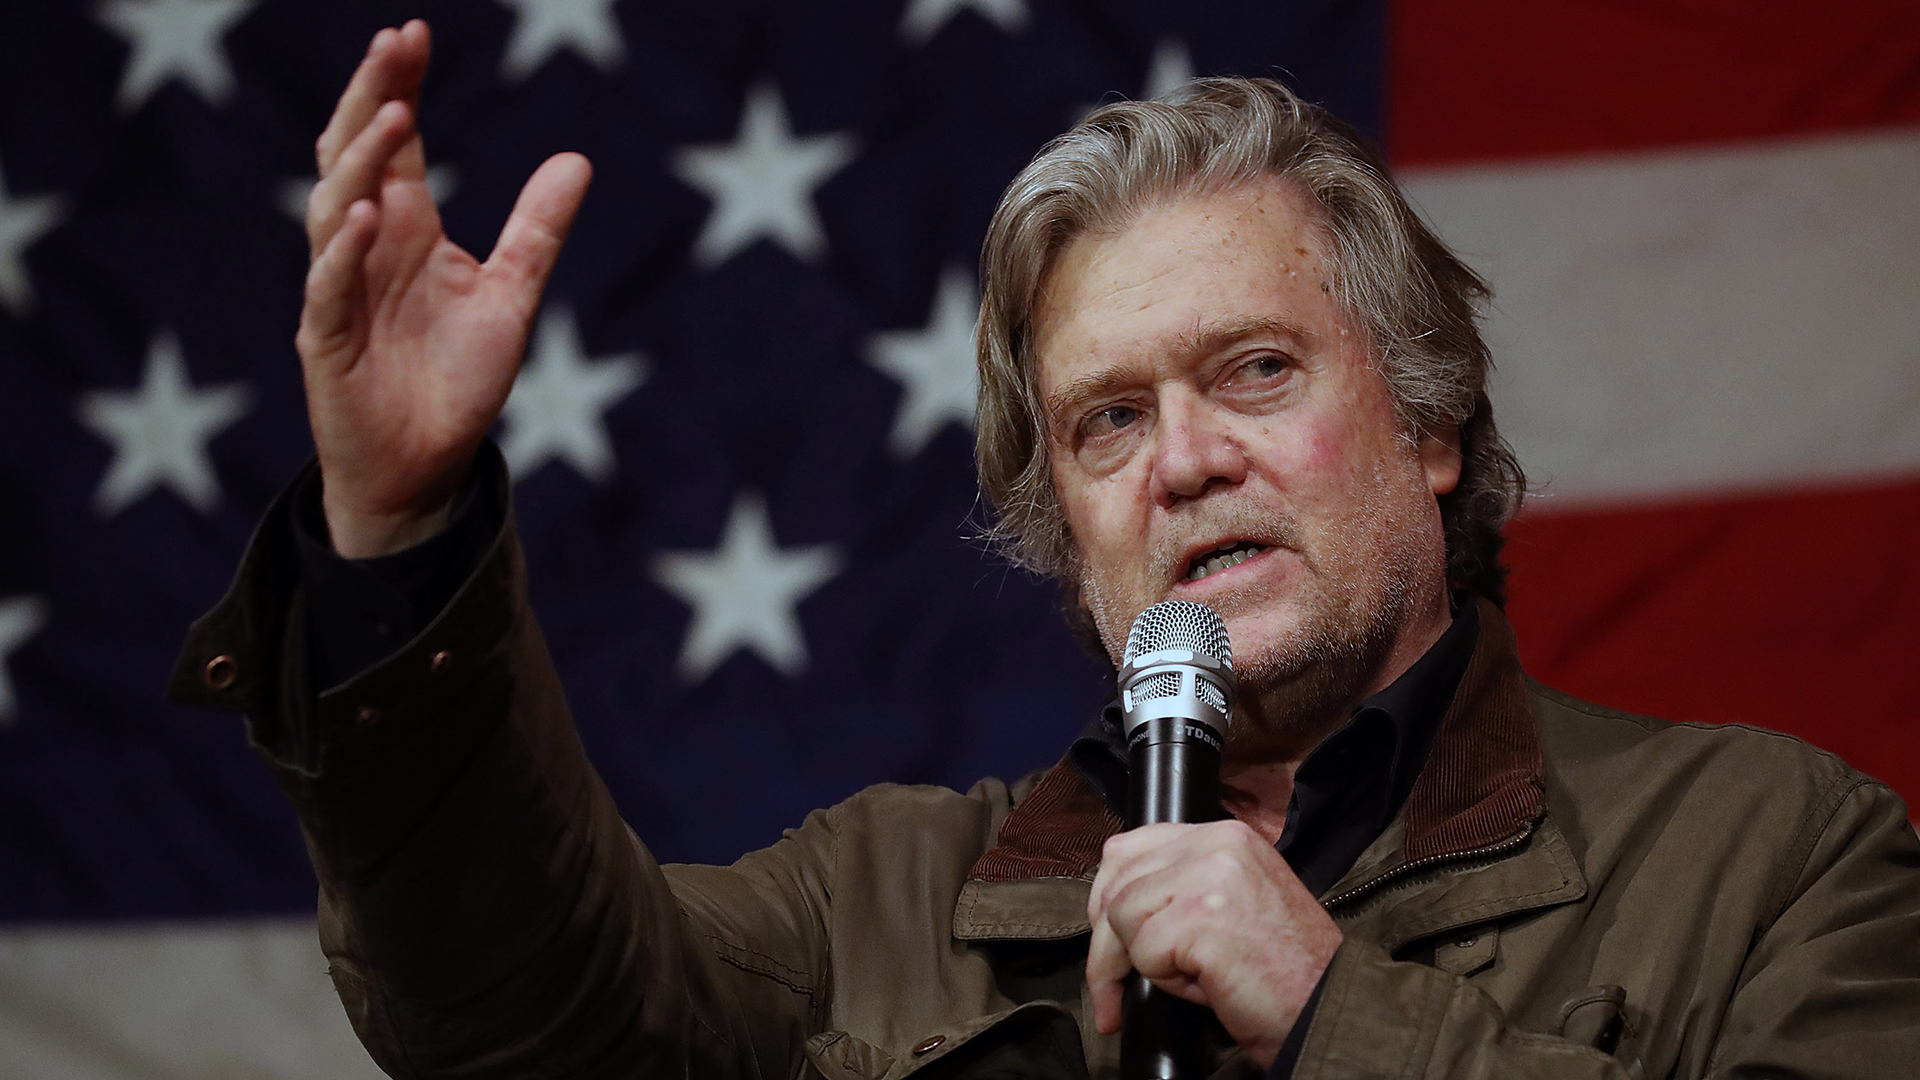 Steve Bannon at Roy Moore rally in Alabama-159532.jpg55086873